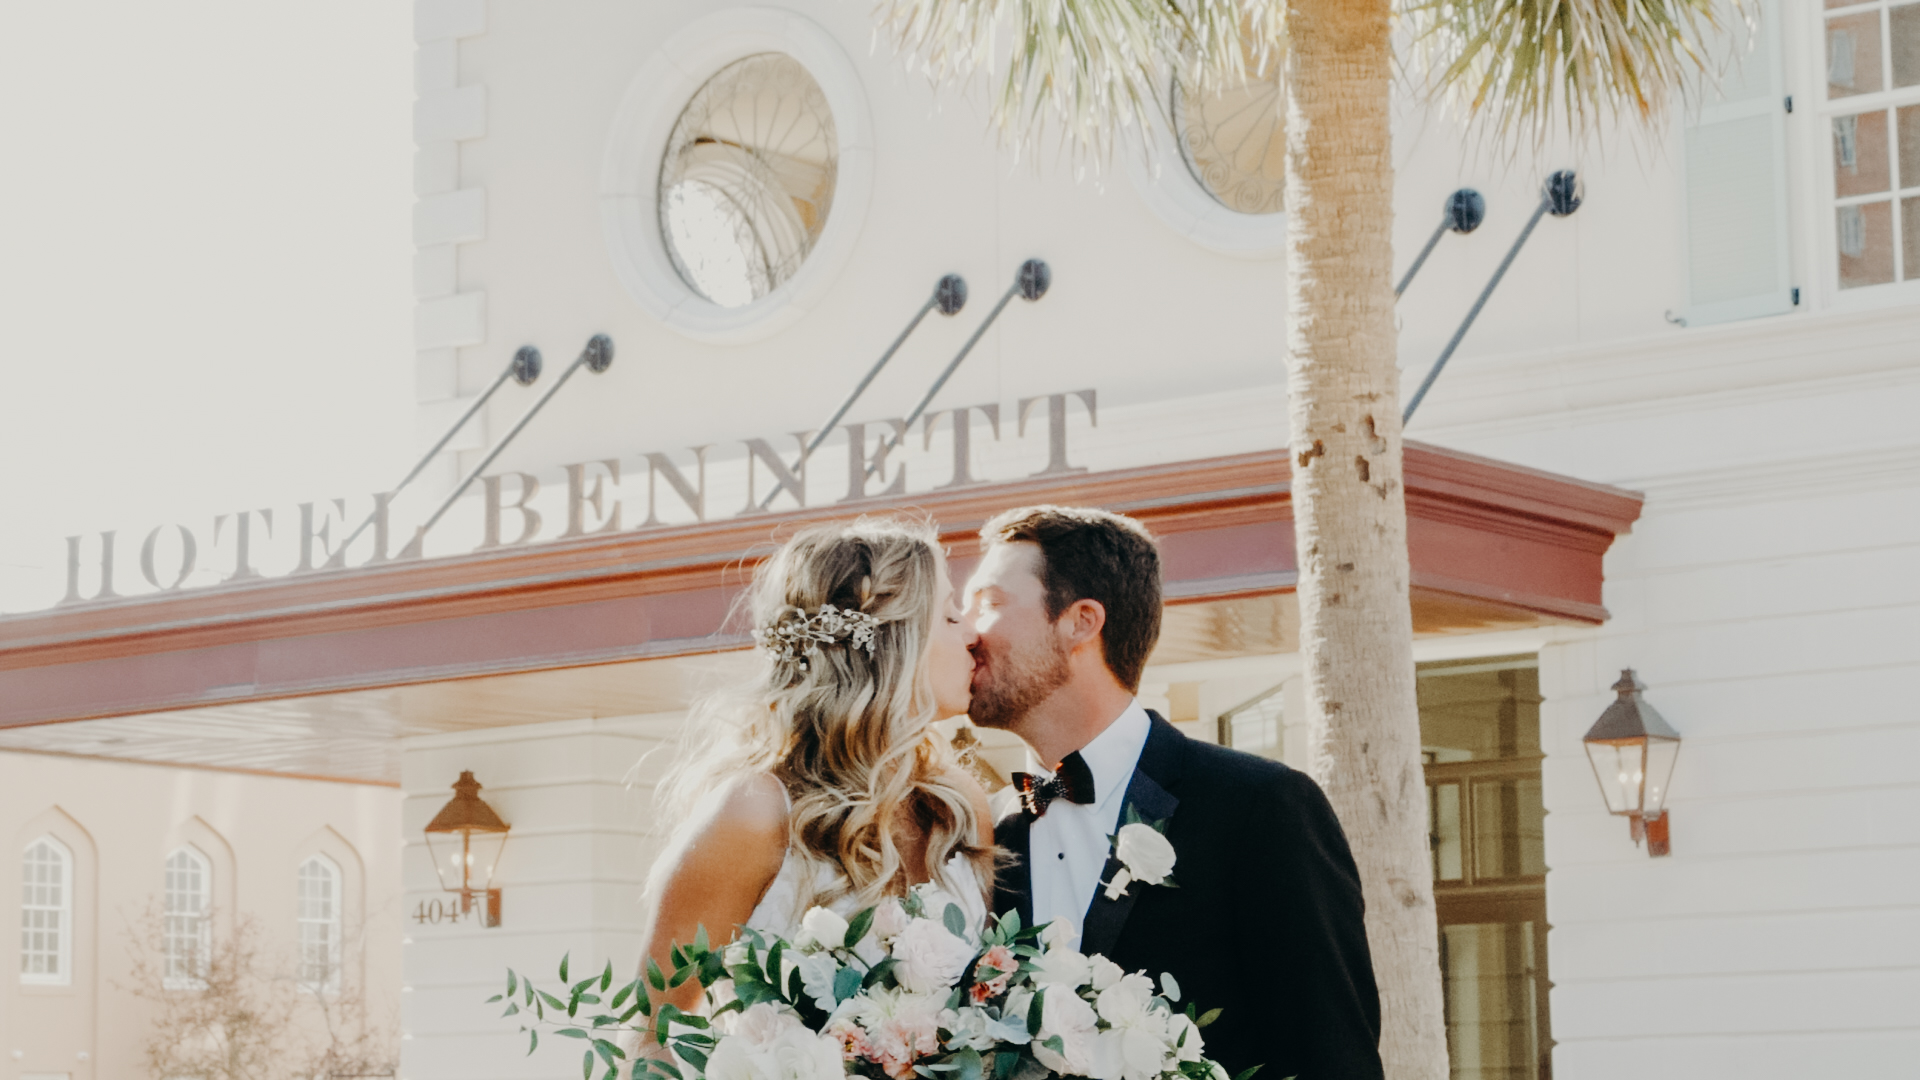 Chloe + Blake | Charleston, South Carolina | Hotel Bennett